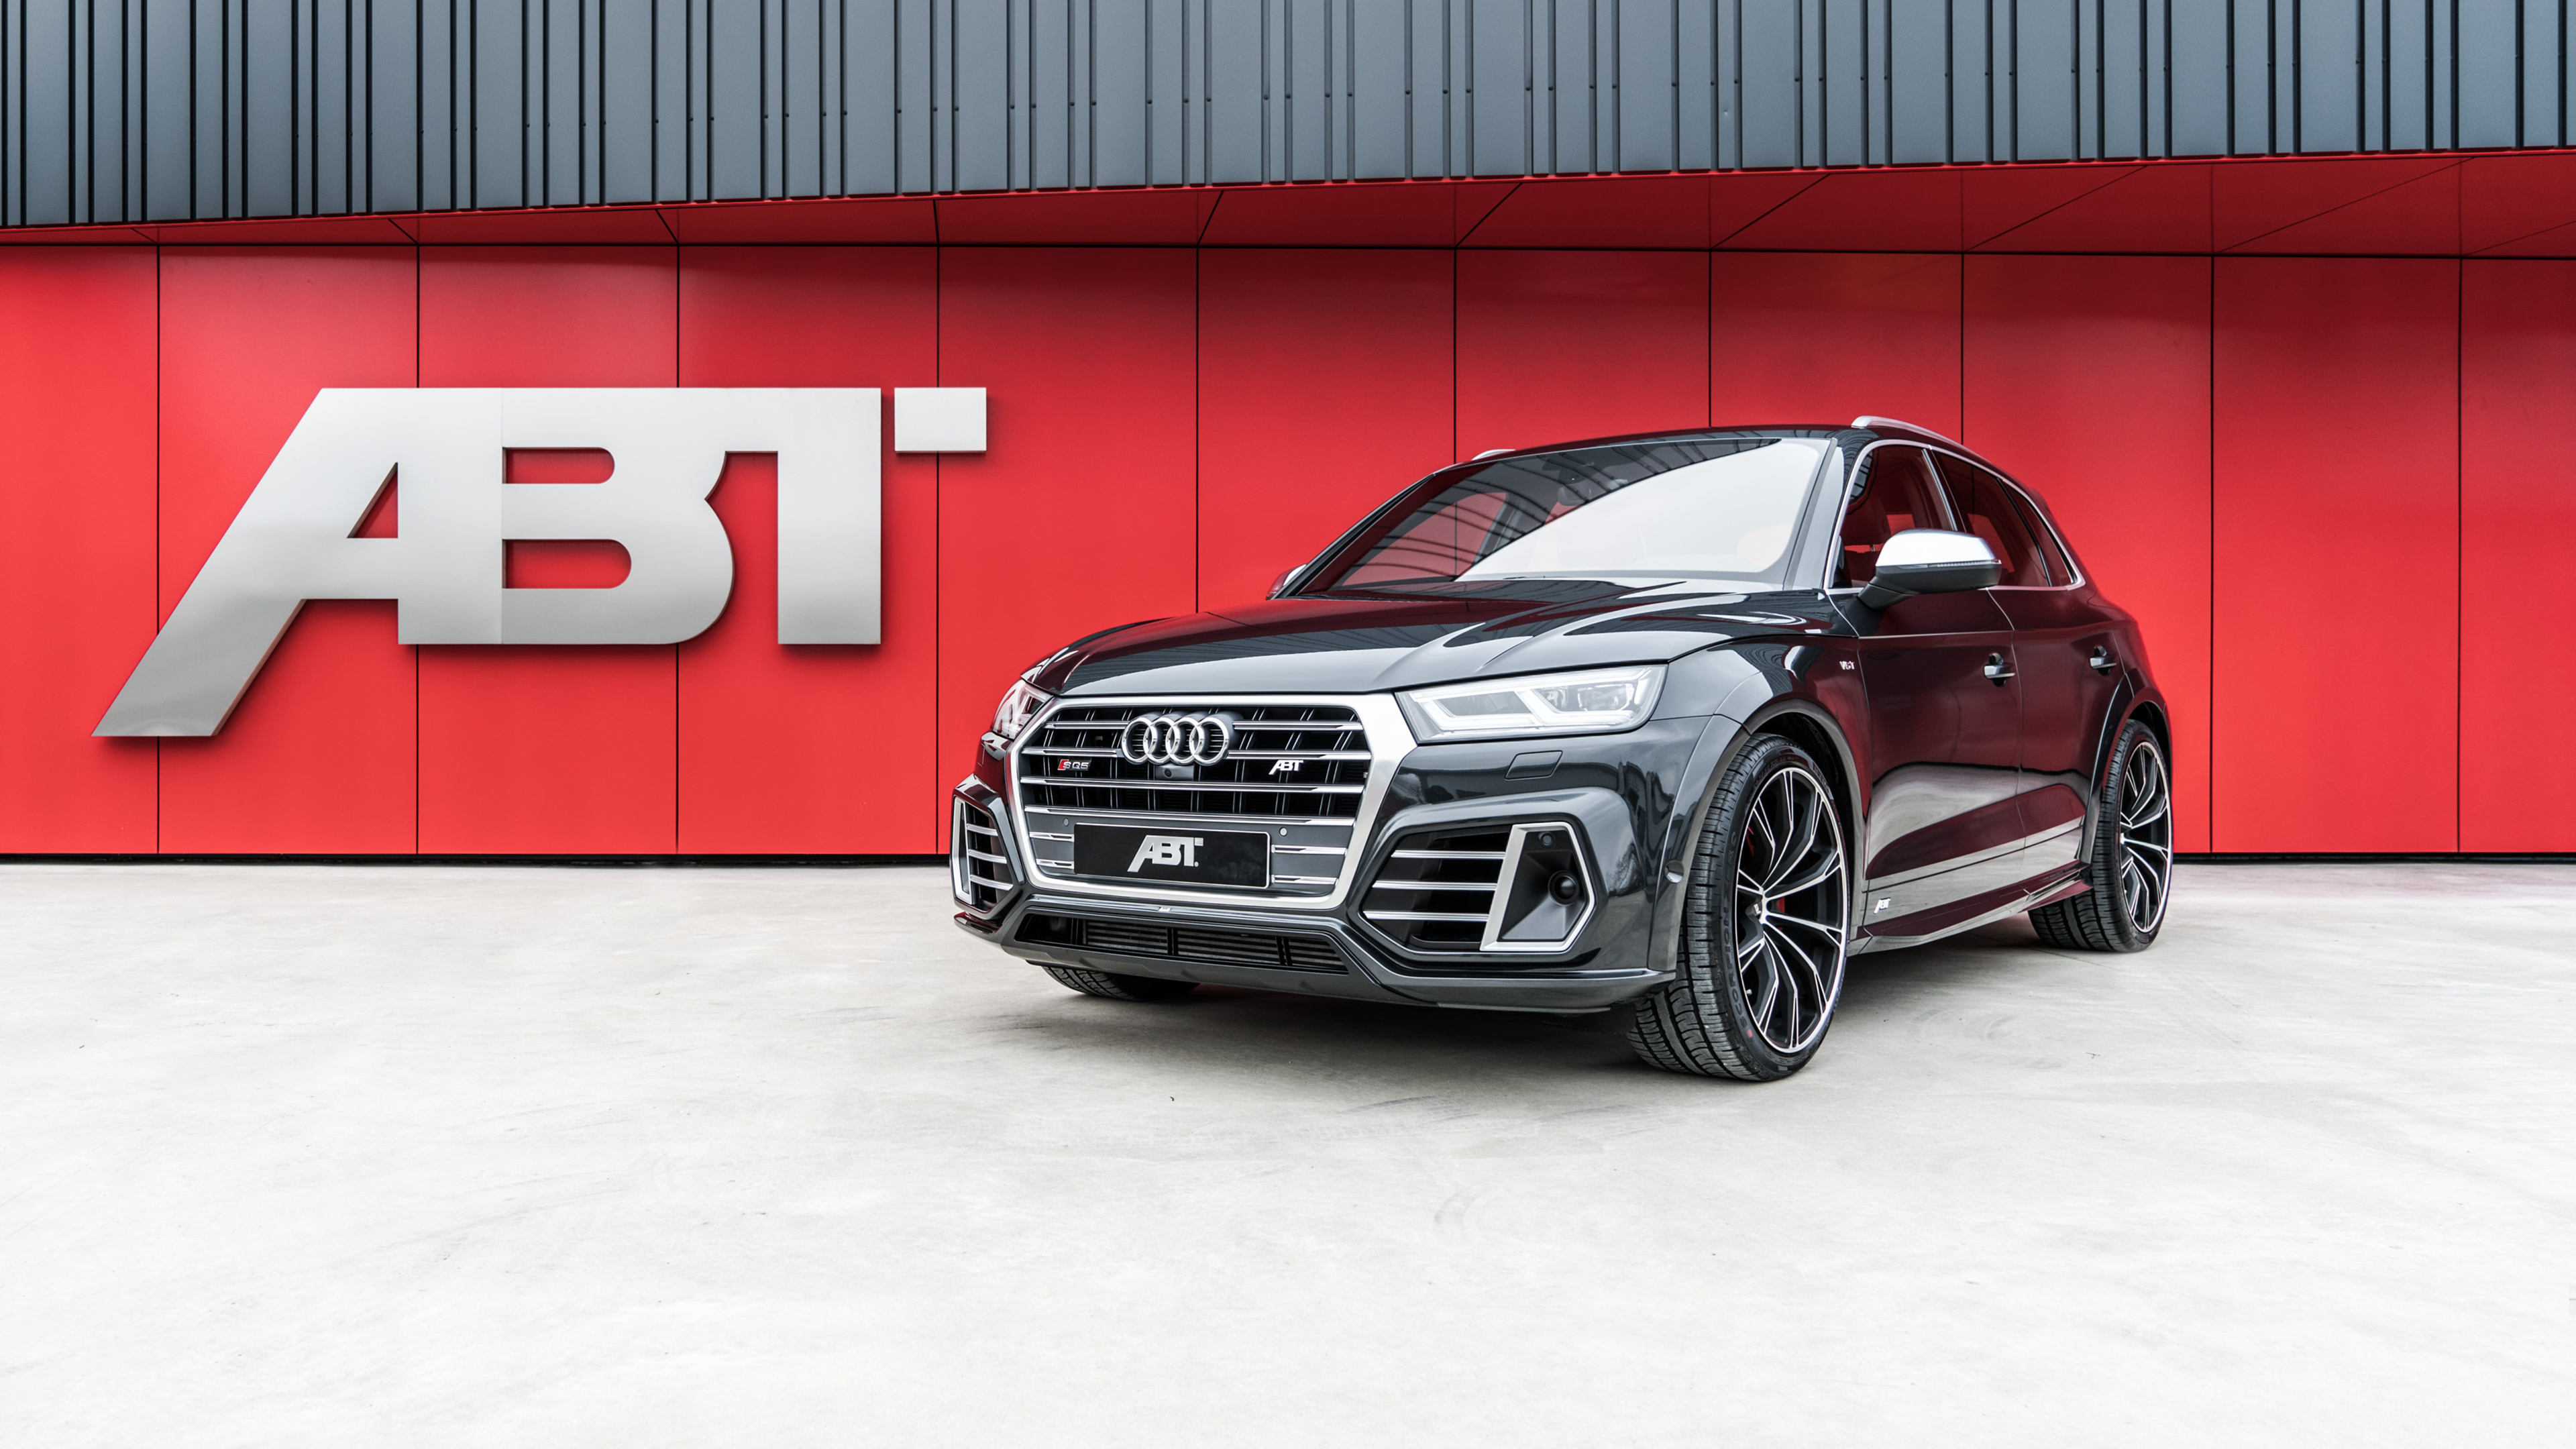 2018 abt audi sq5 widebody 4k wallpaper hd car wallpapers. Black Bedroom Furniture Sets. Home Design Ideas